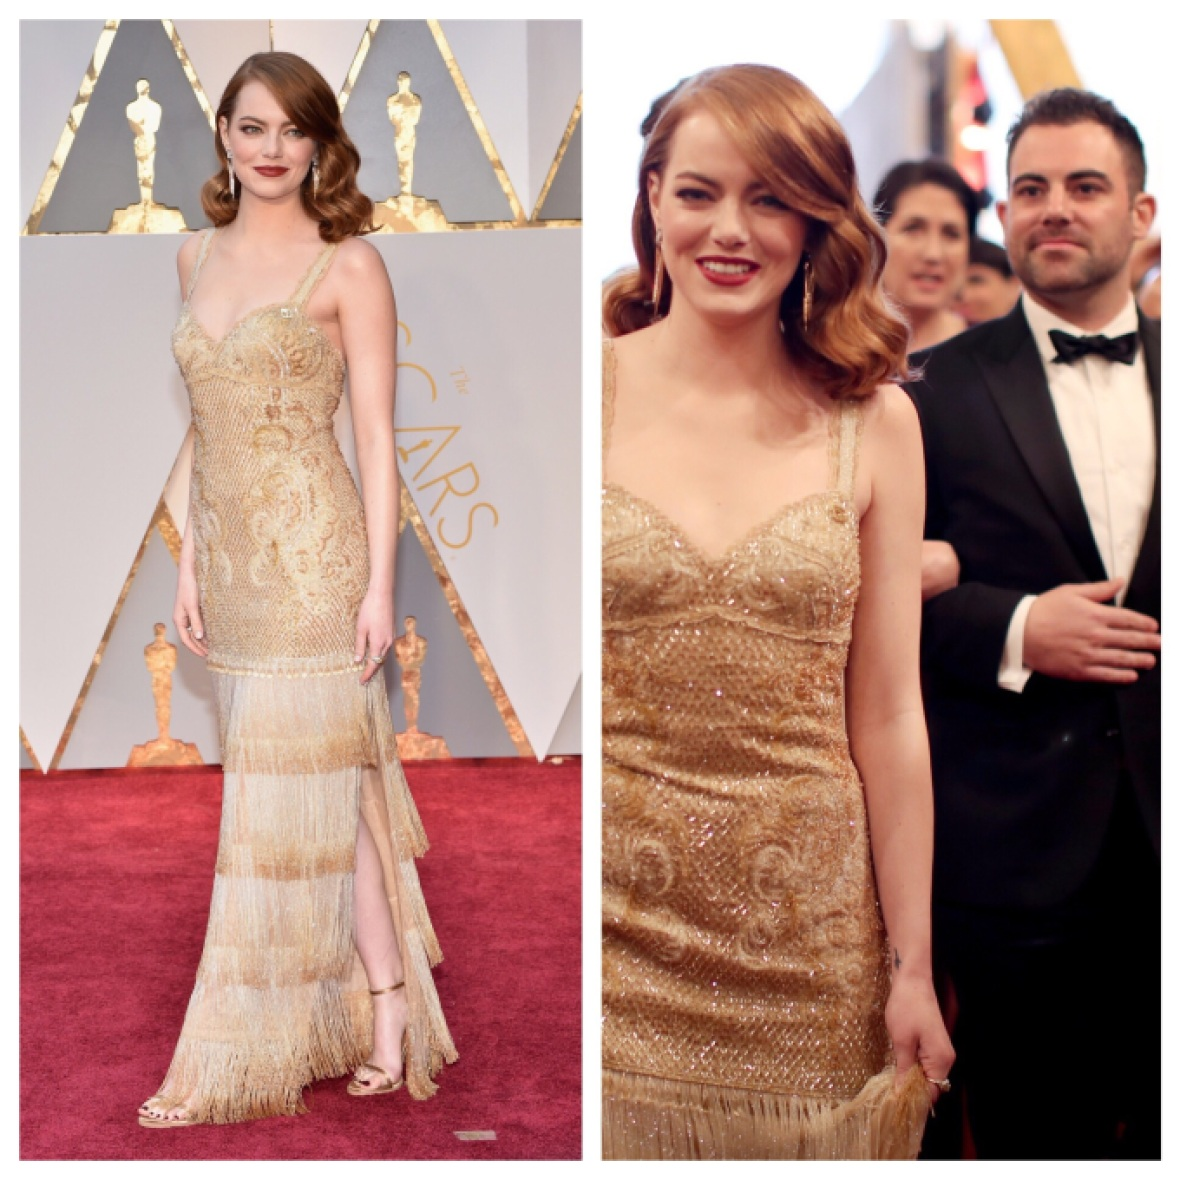 emma stone brother getty images